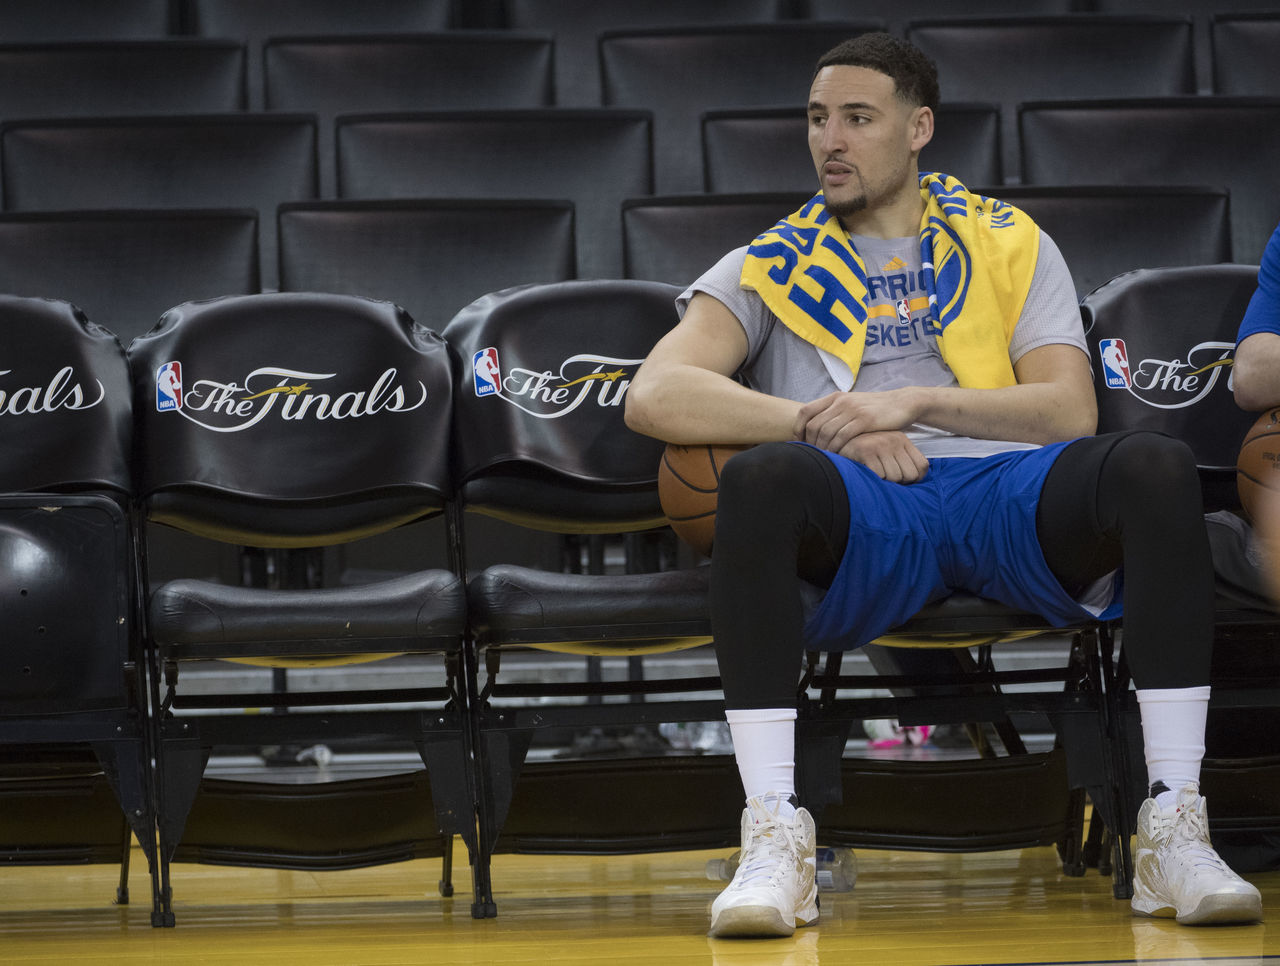 Cropped 2017 05 31t221102z 2117943601 nocid rtrmadp 3 nba finals media day